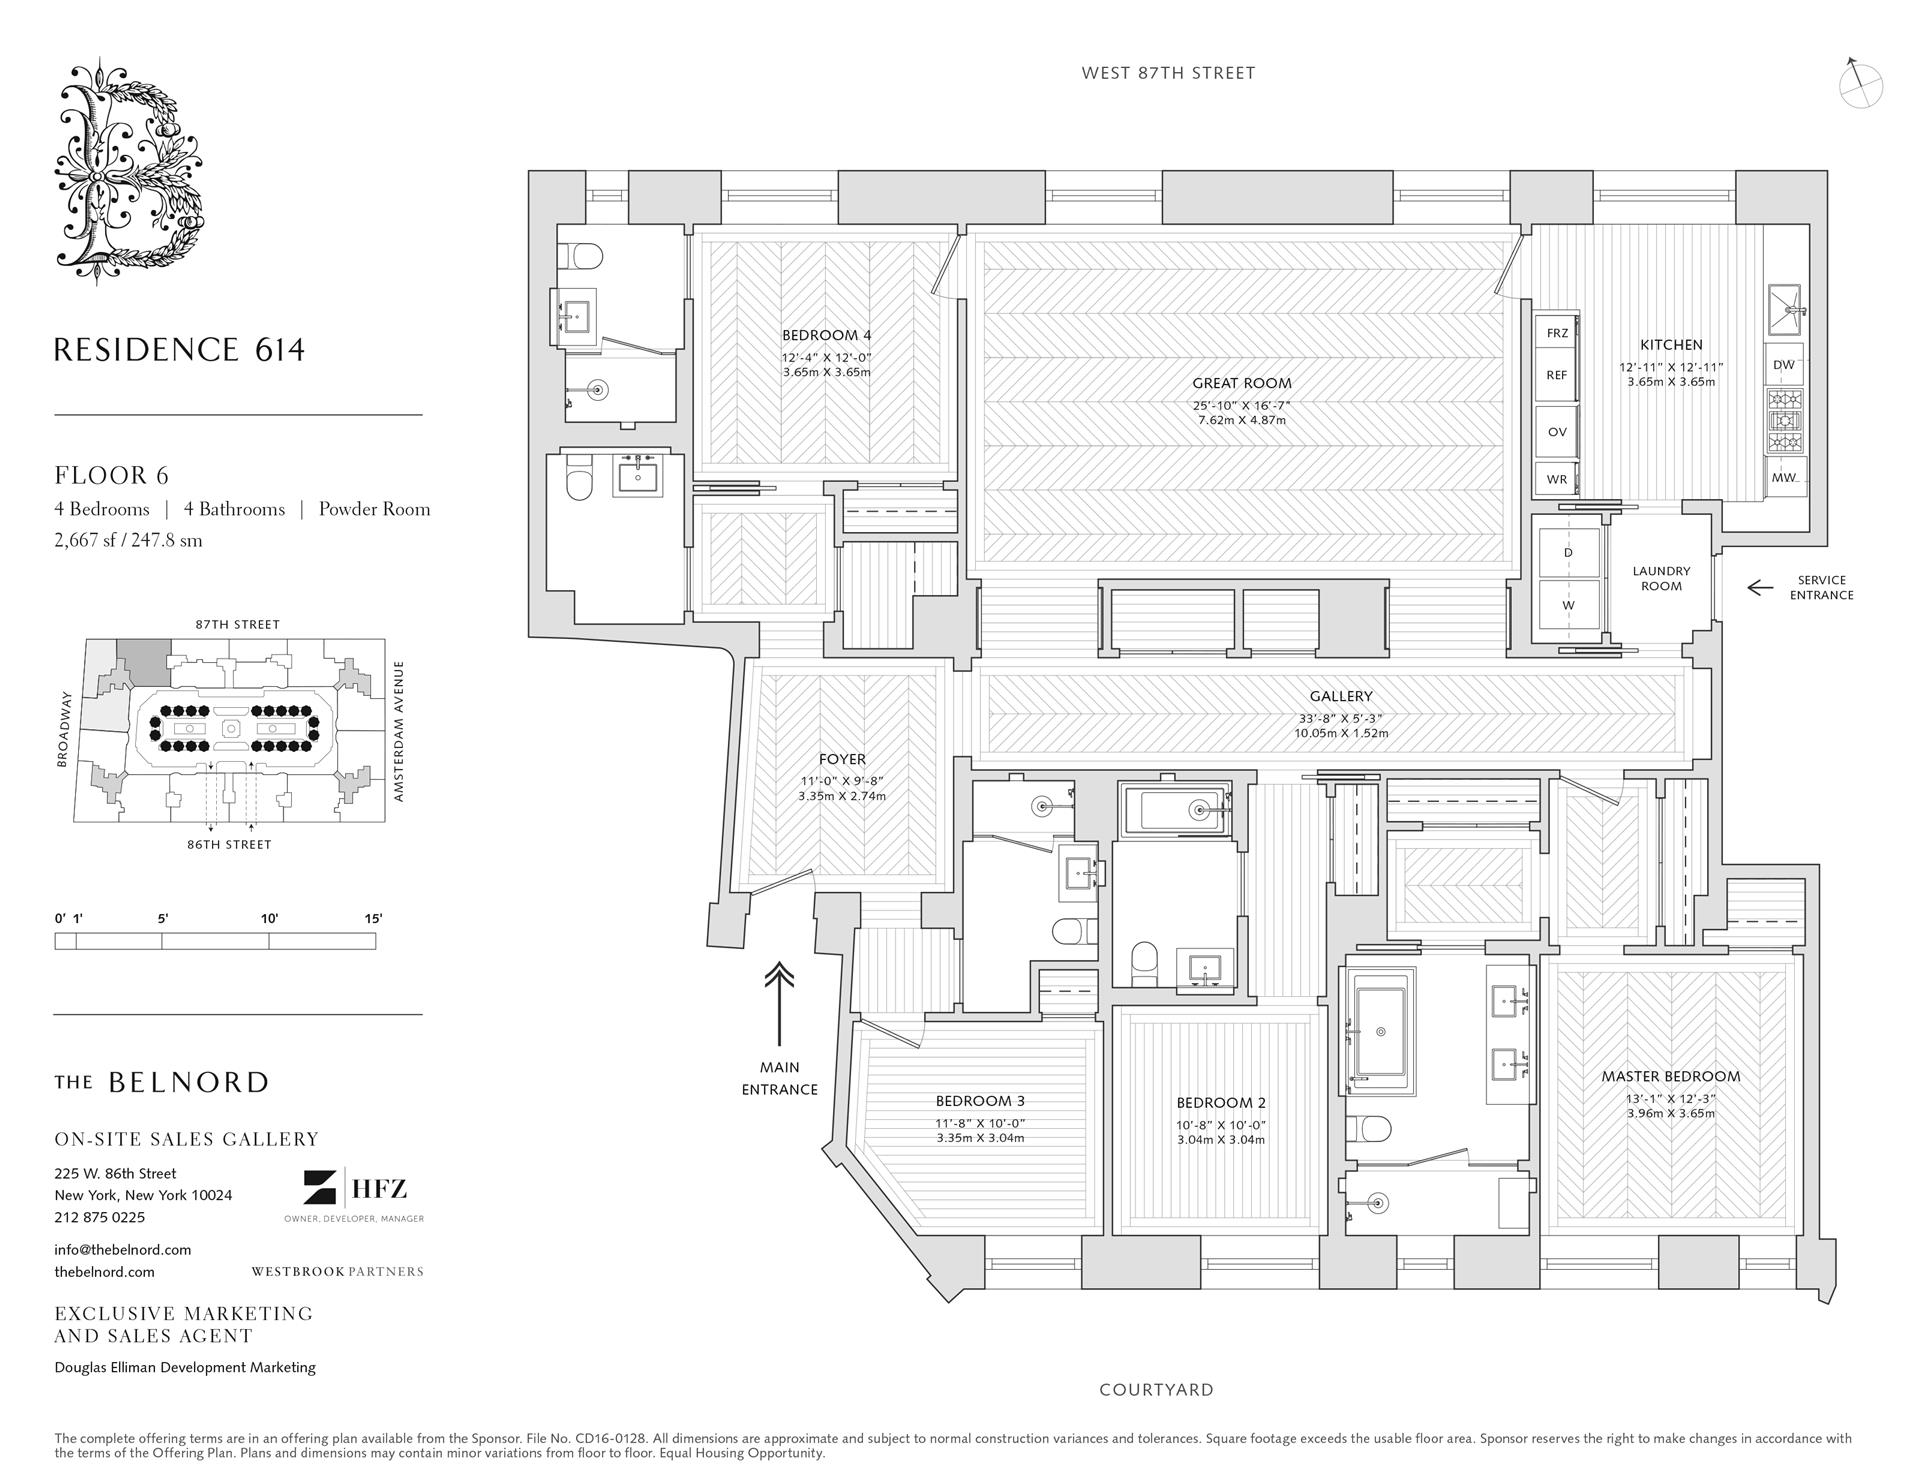 Floor plan of The Belnord, 225 West 86th St, 614 - Upper West Side, New York